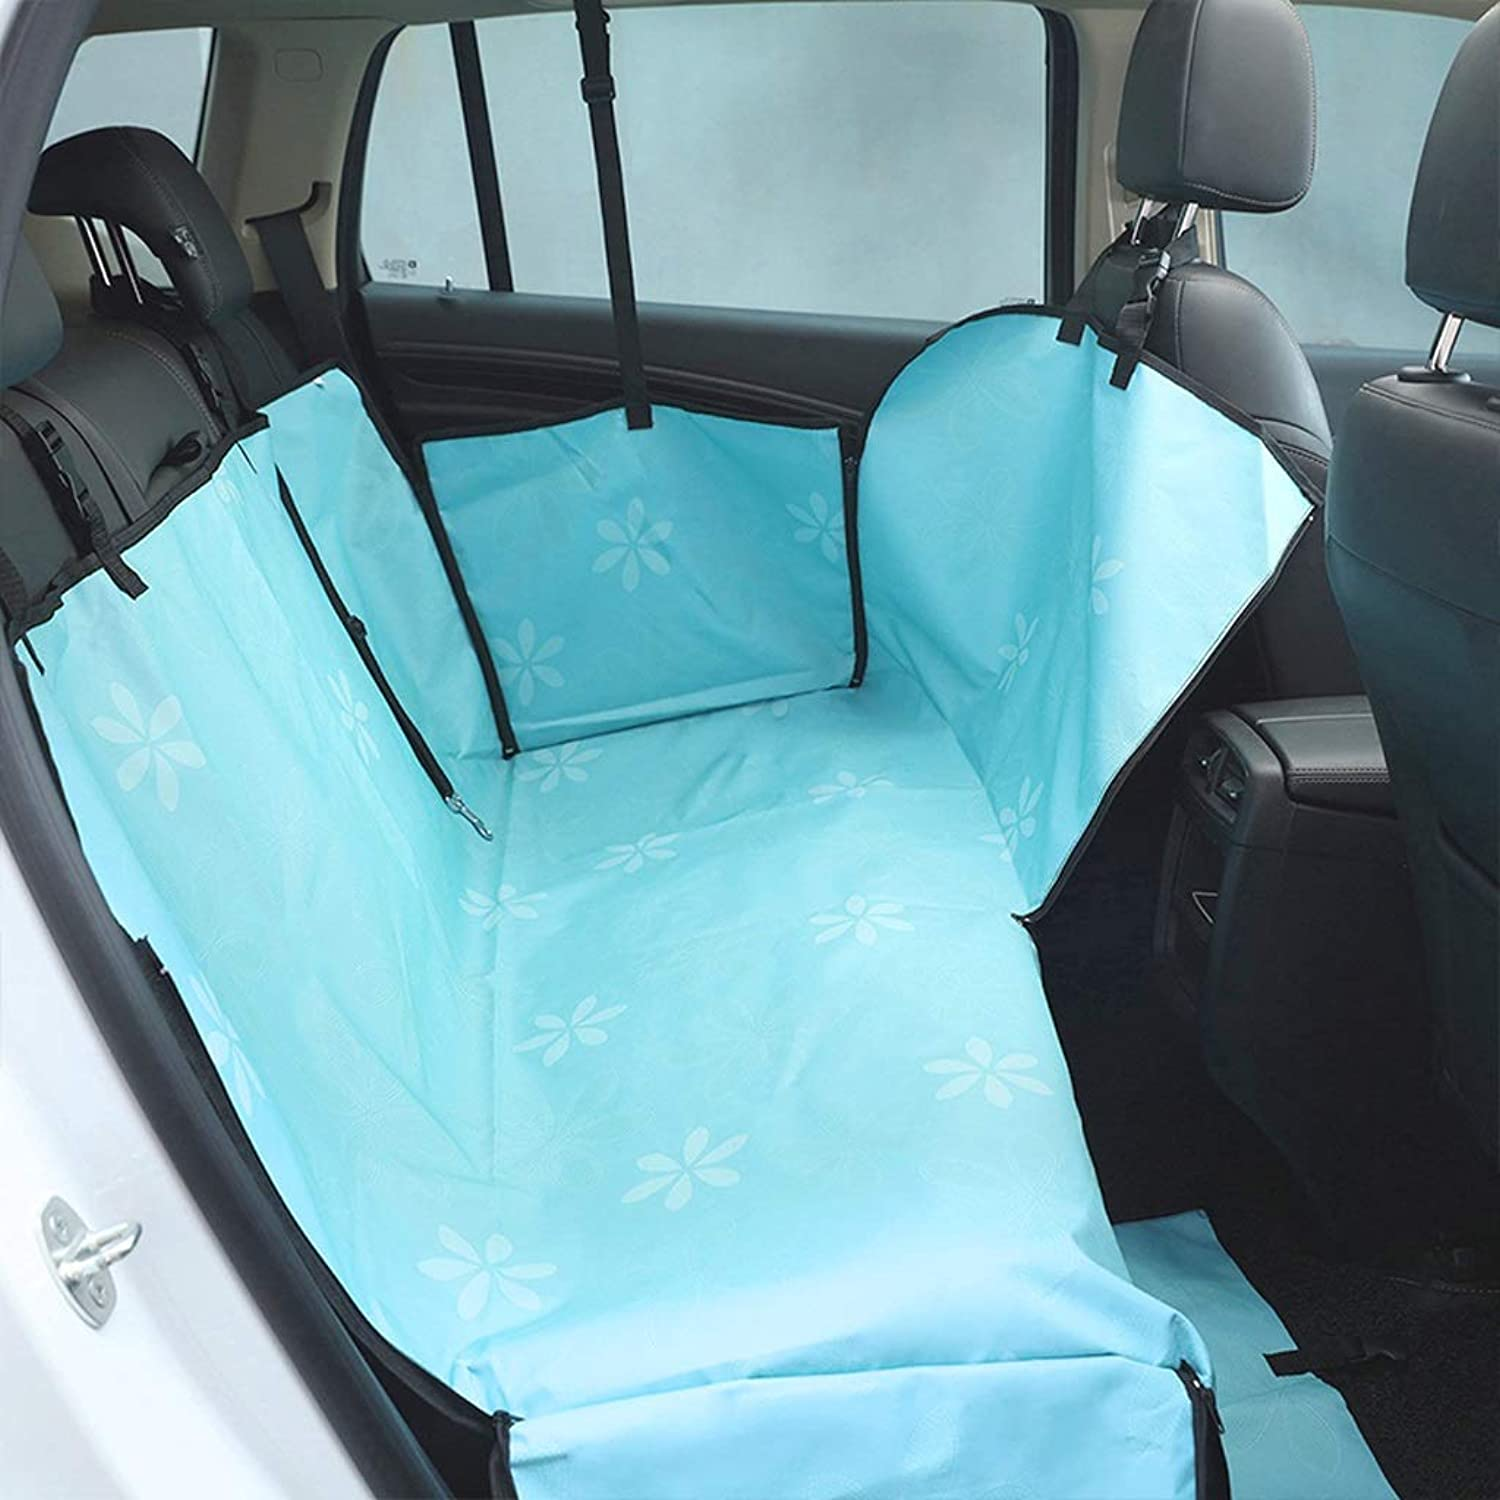 Dog Car Seat Covers Hammock Waterproof Back Seat Cover Predector Pet Travel Cover Universal fits All Cars (color   Sky bluee, Size   OneSize)